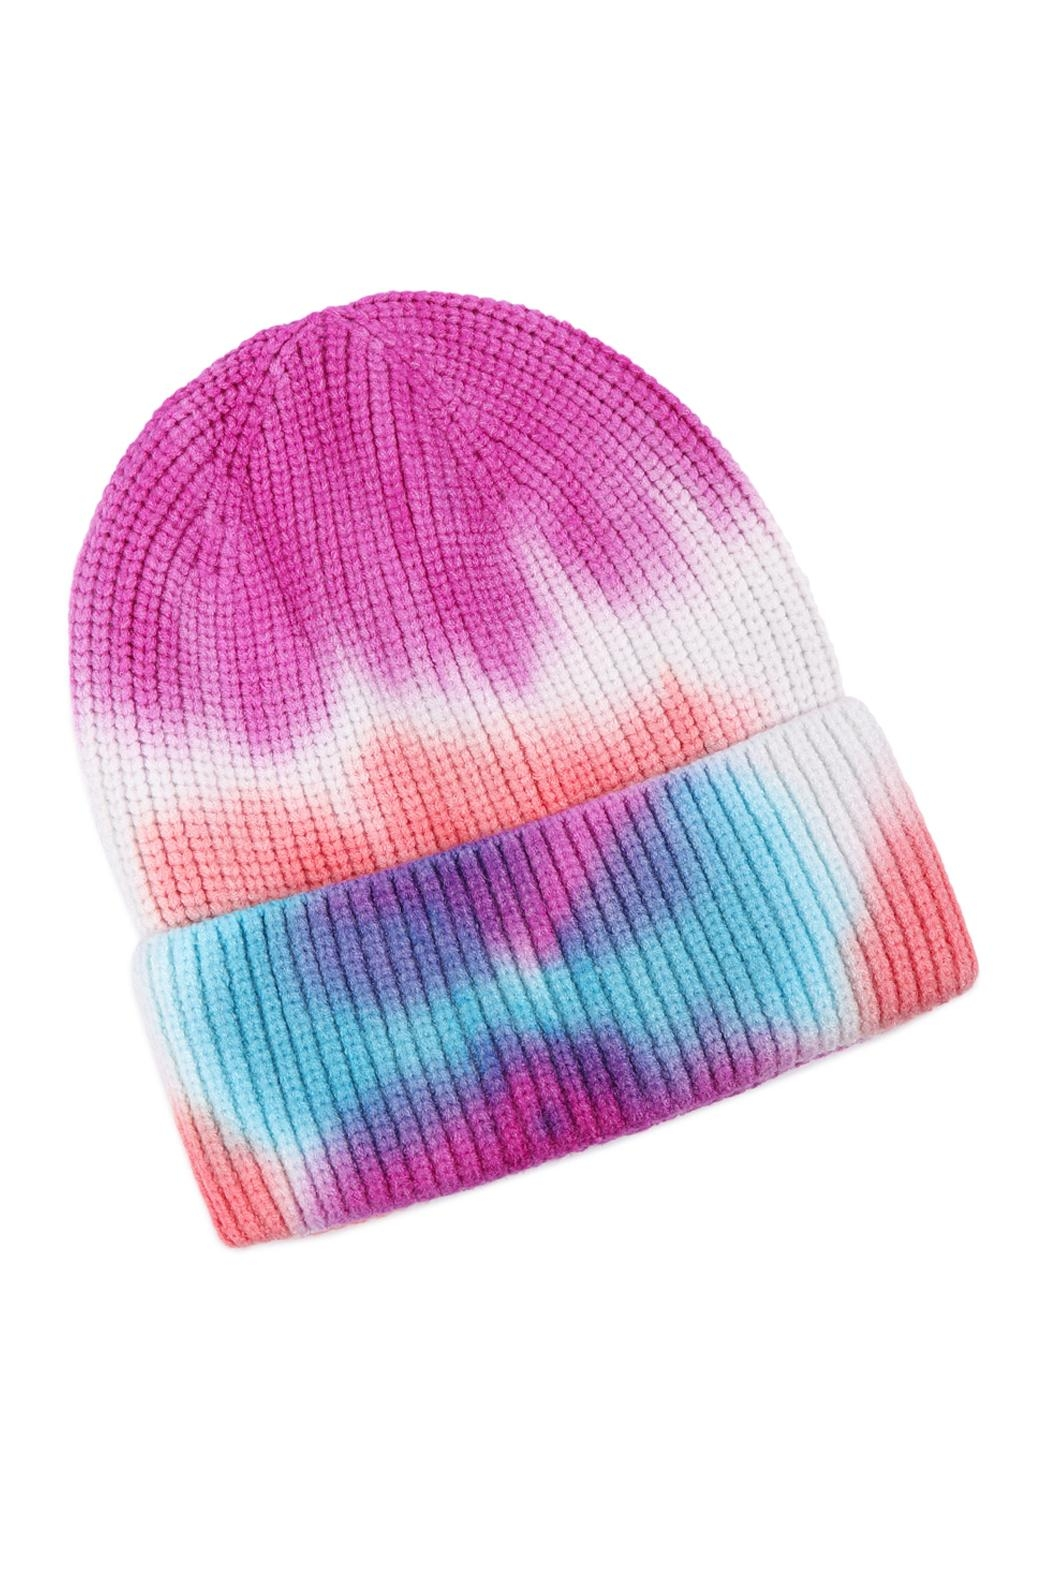 Riah Fashion Tie-Dye-Knitted-Multicolor-Beanie - Front Full Image